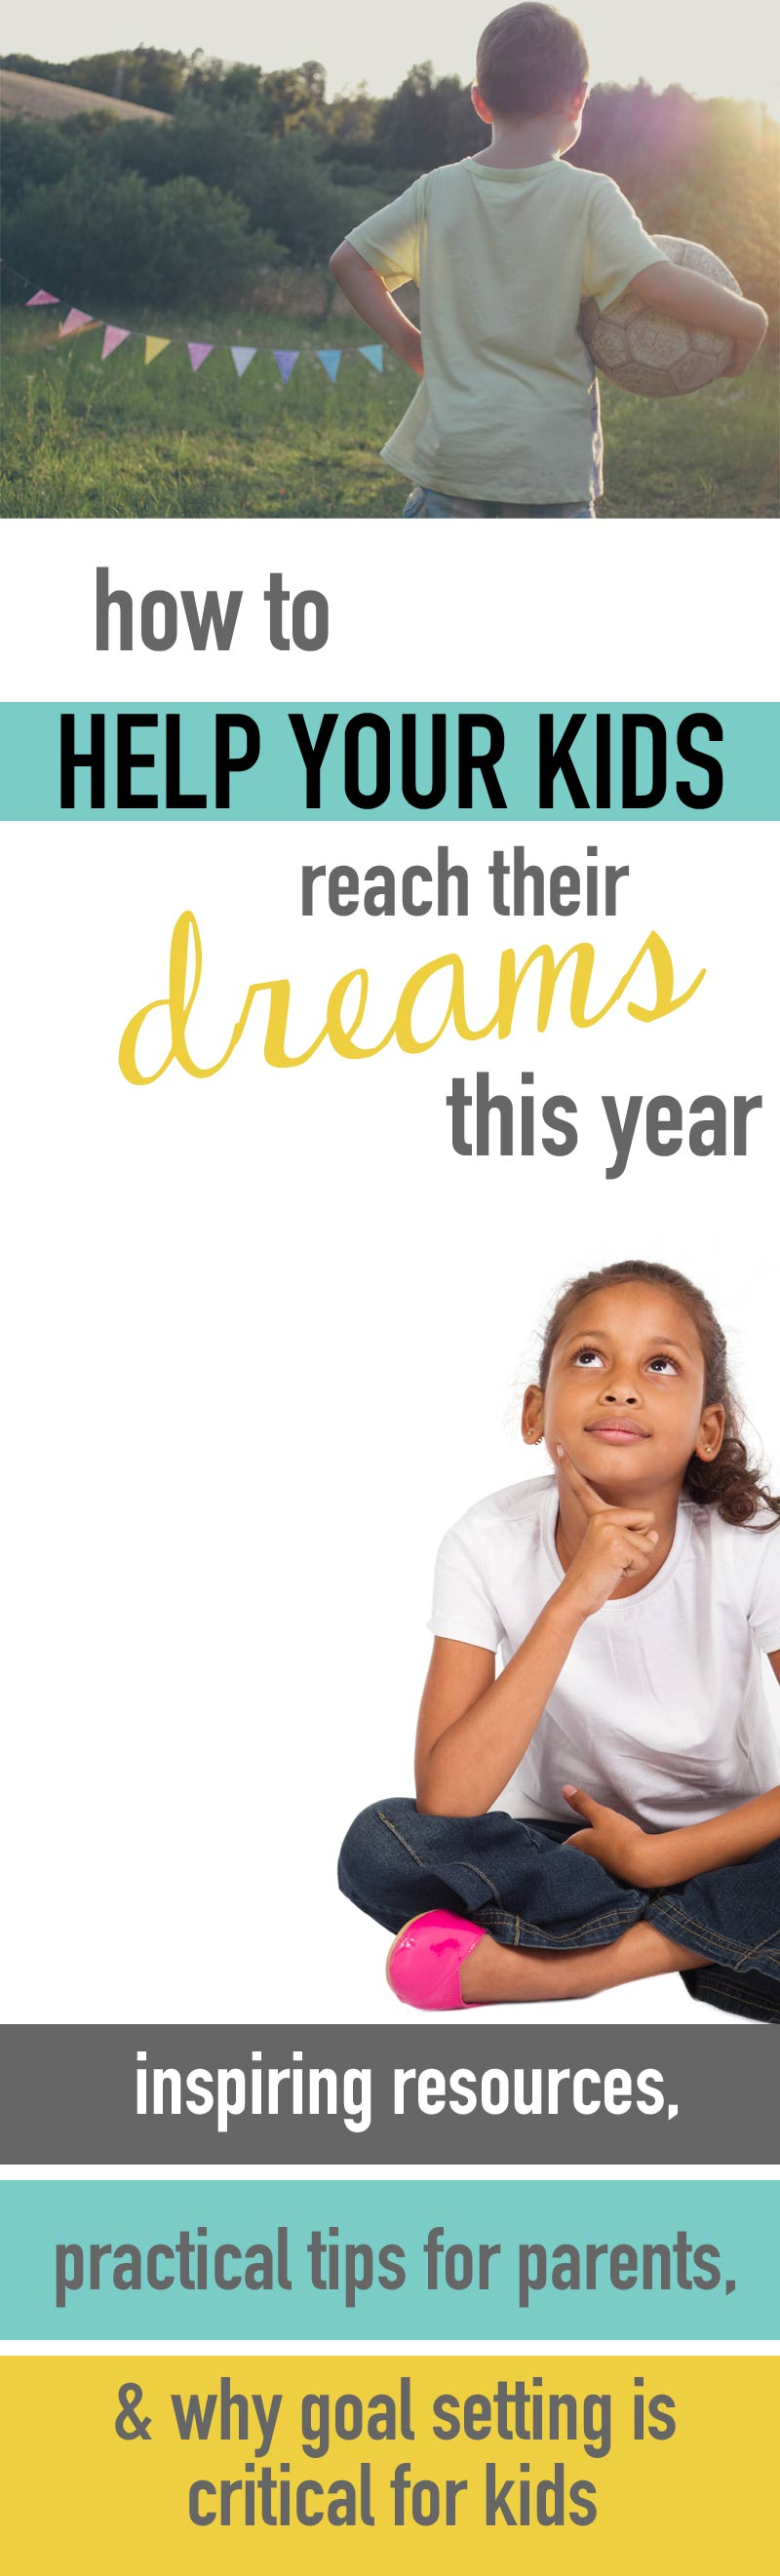 Goal planning for kids! I haven't seen anything else out there like this so I'm so glad I found this for my kids this year. How to help your kids set goals, make plans and go for their dreams! Goal setting resources, powerful tips for parents and more.